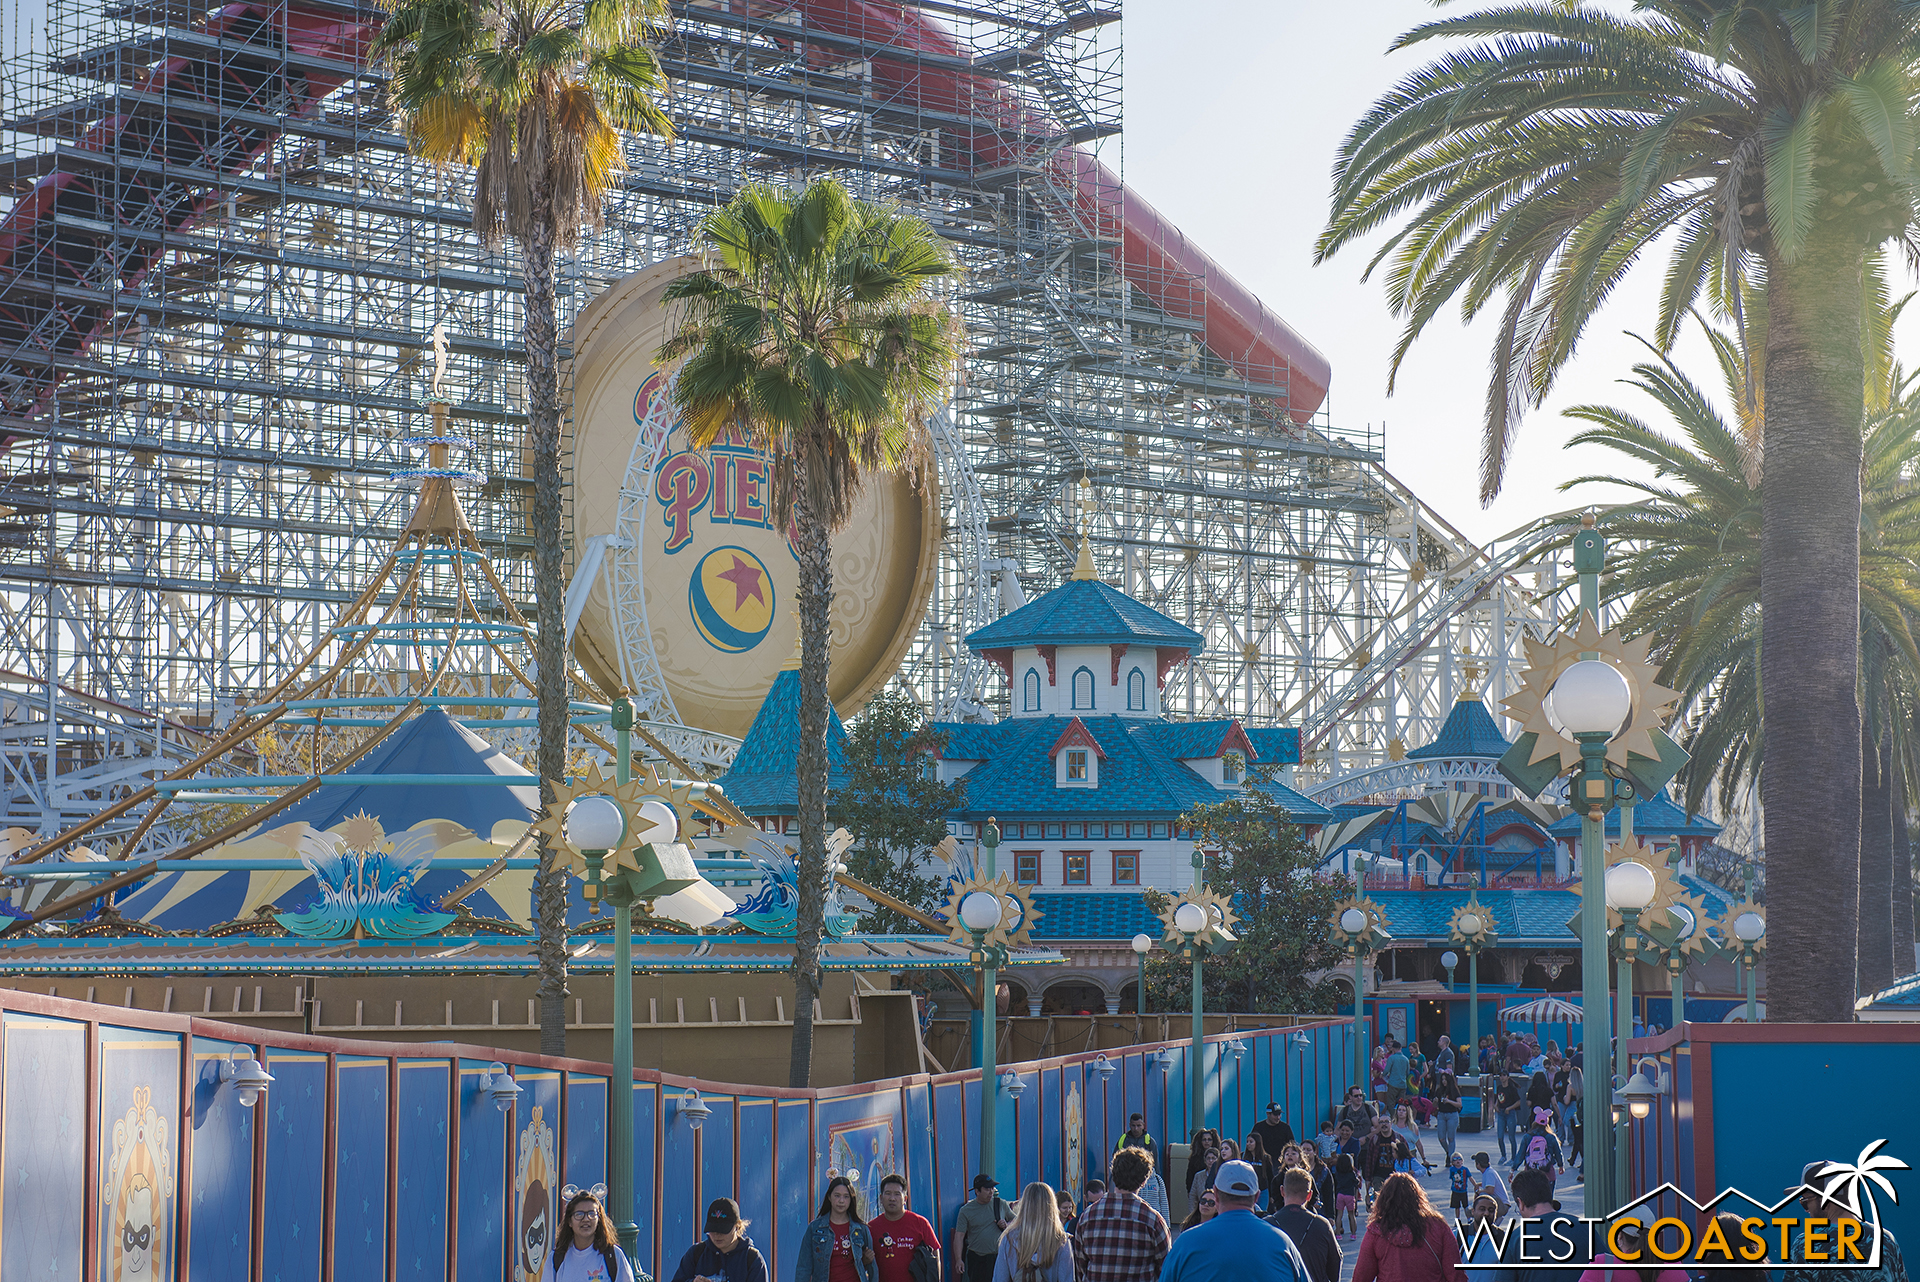 Some concrete formwork has gone up around the carousel.